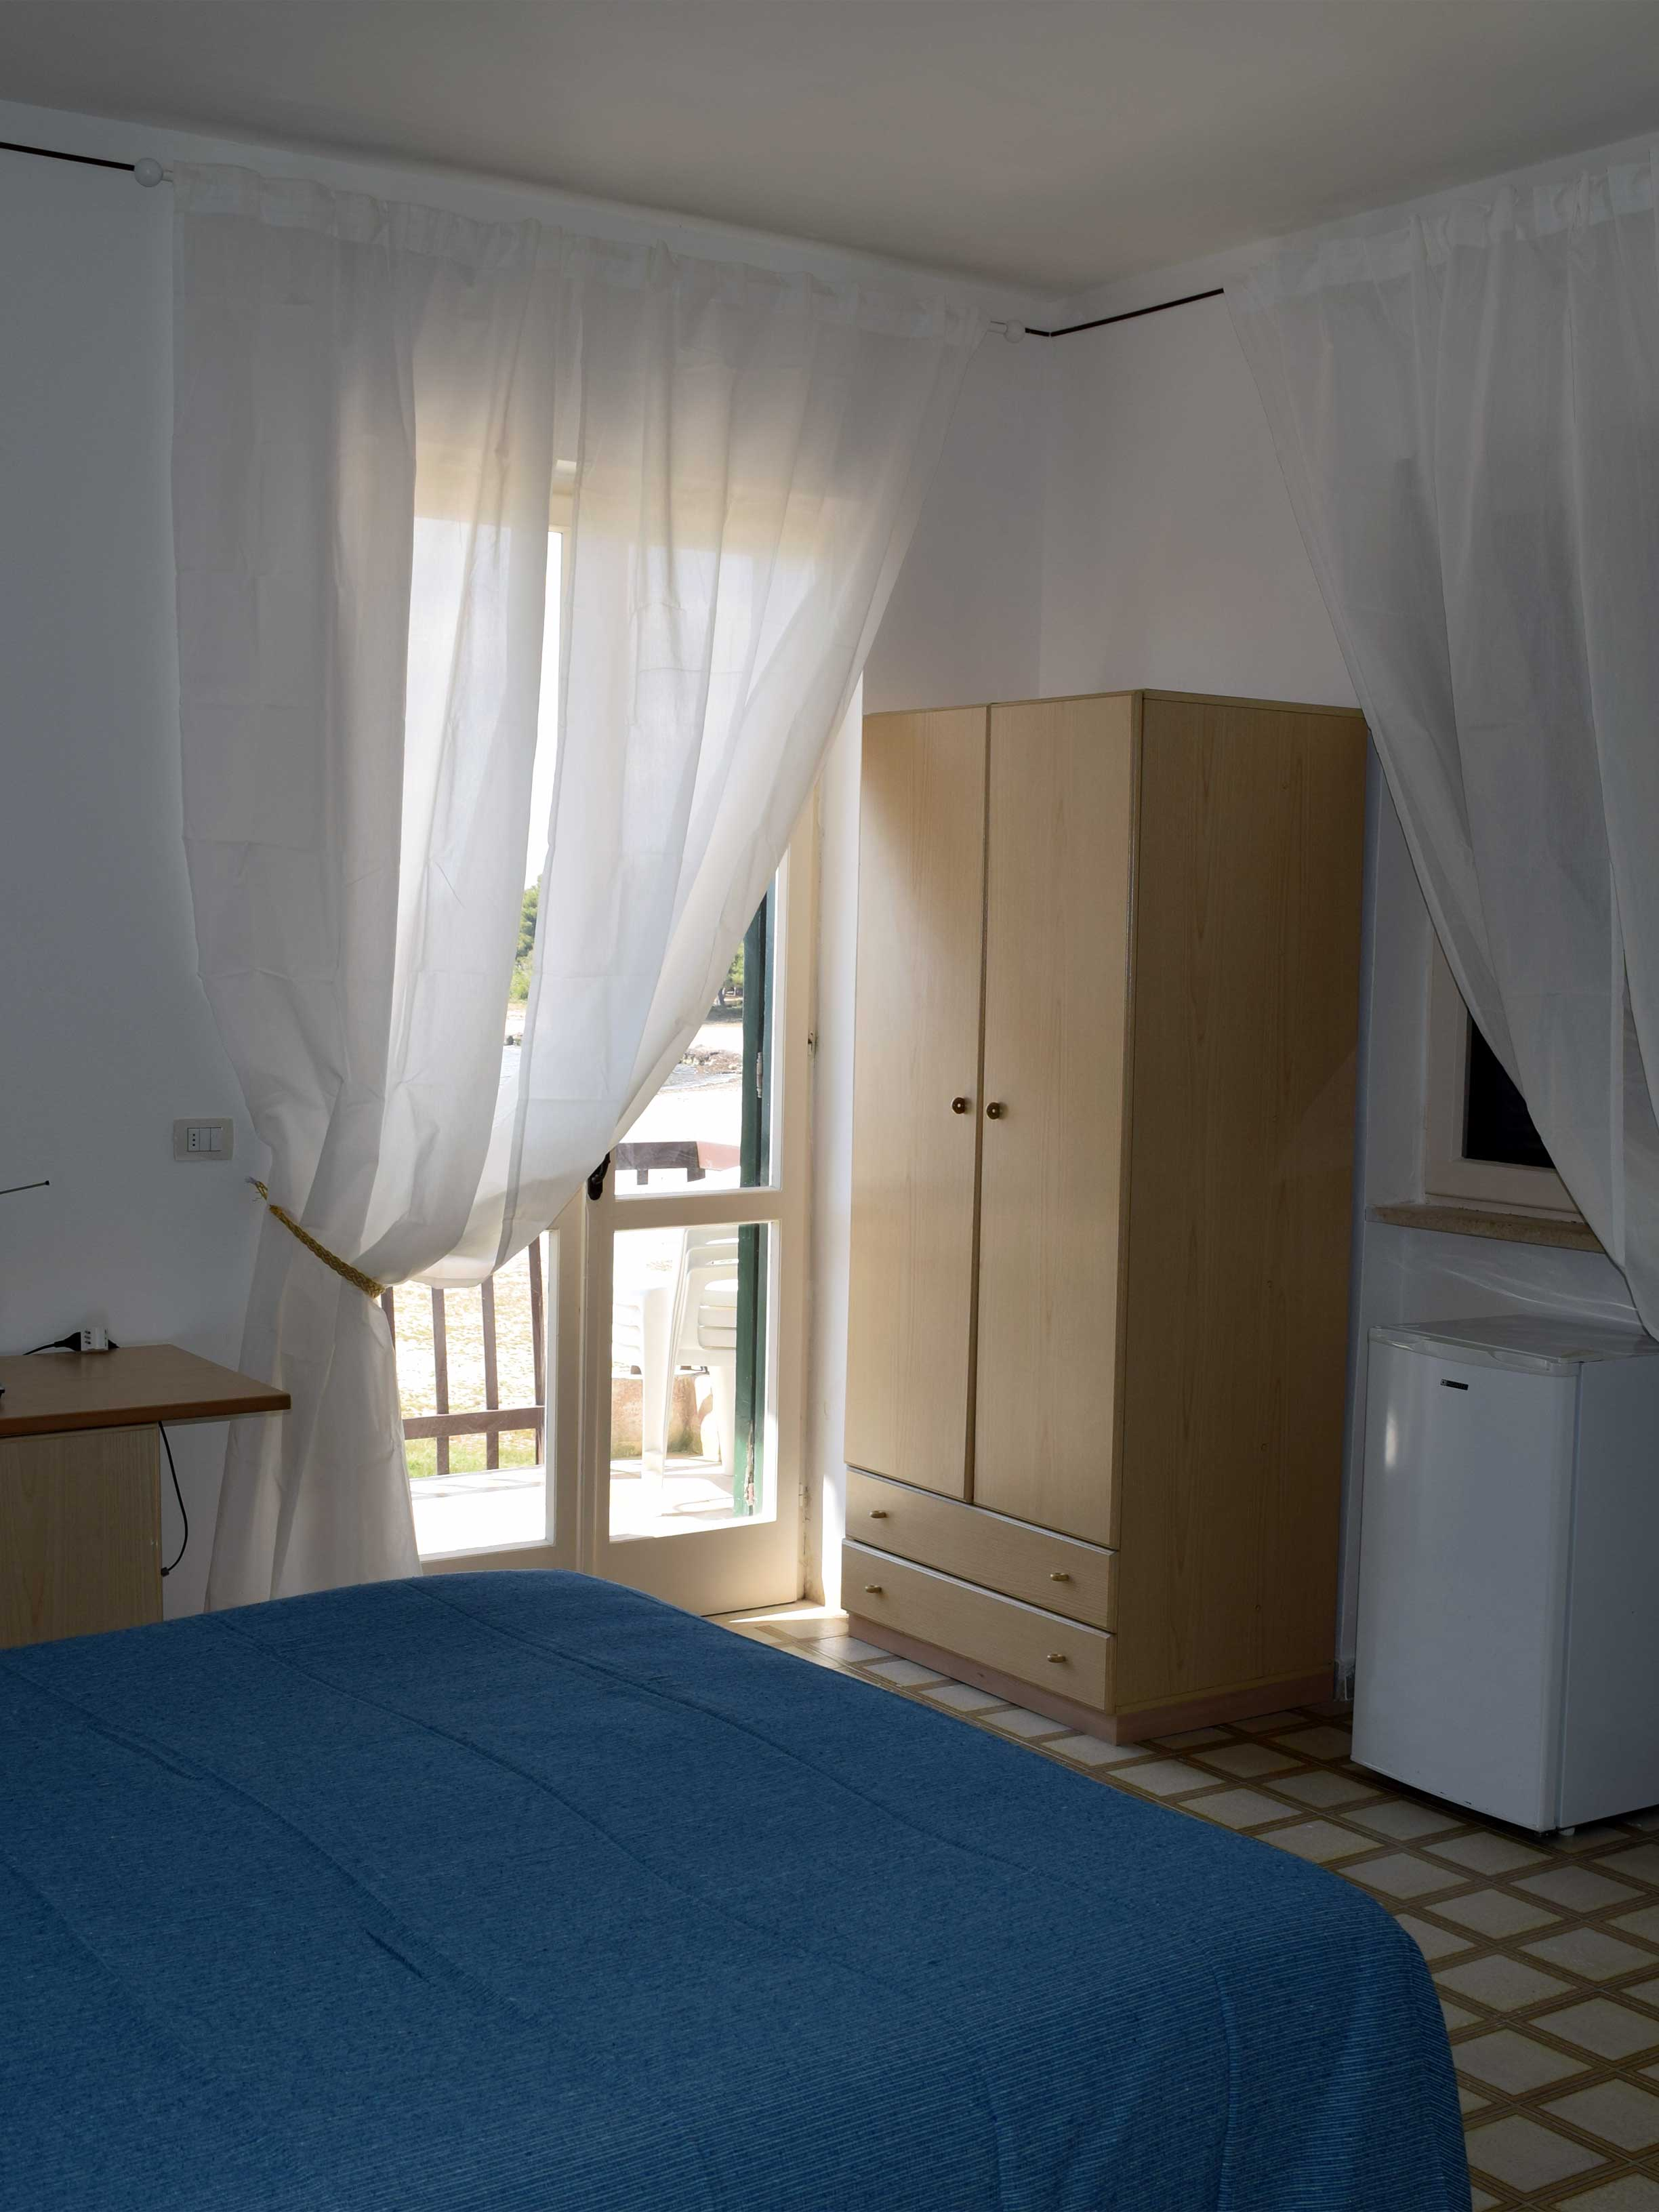 Bed And Breakfast Agapimare Gallipoli Salento